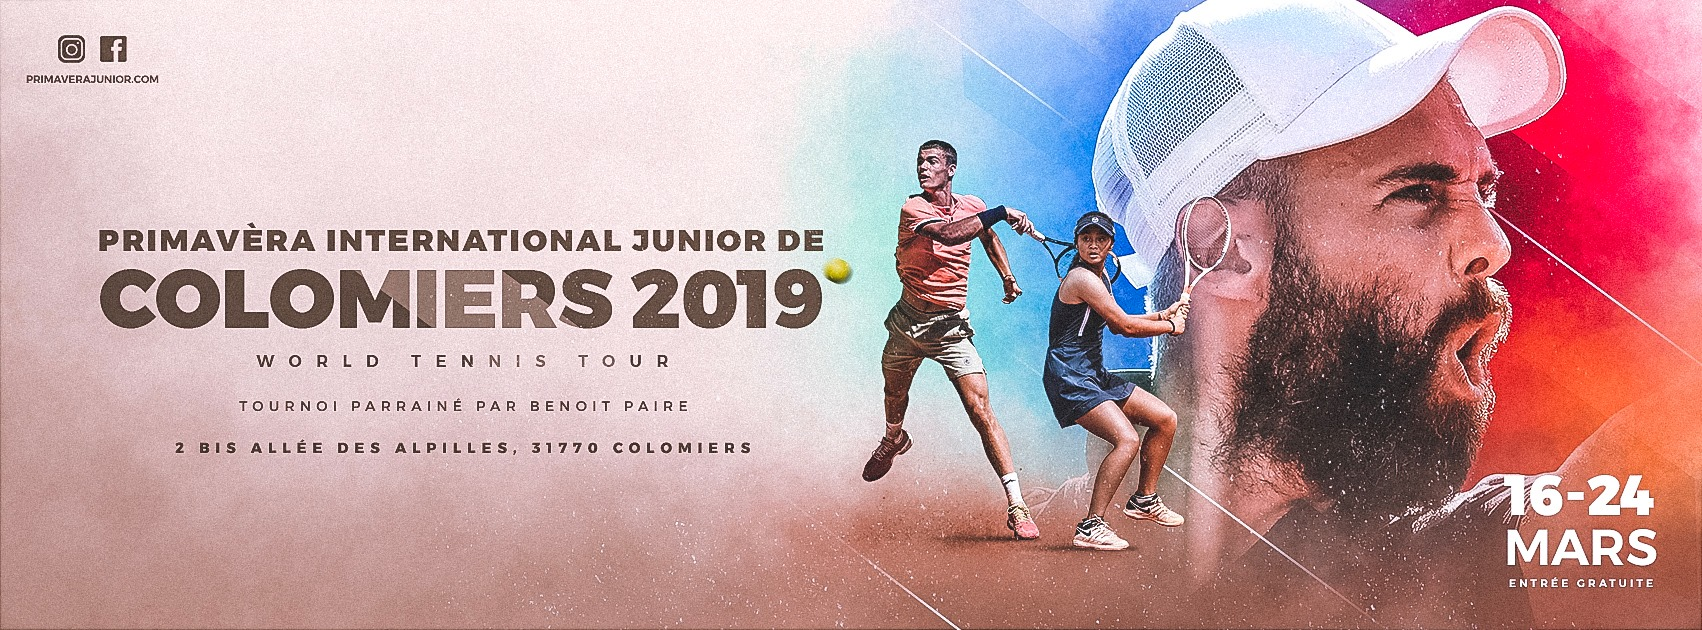 tennis primavera itf junior open colomiers france